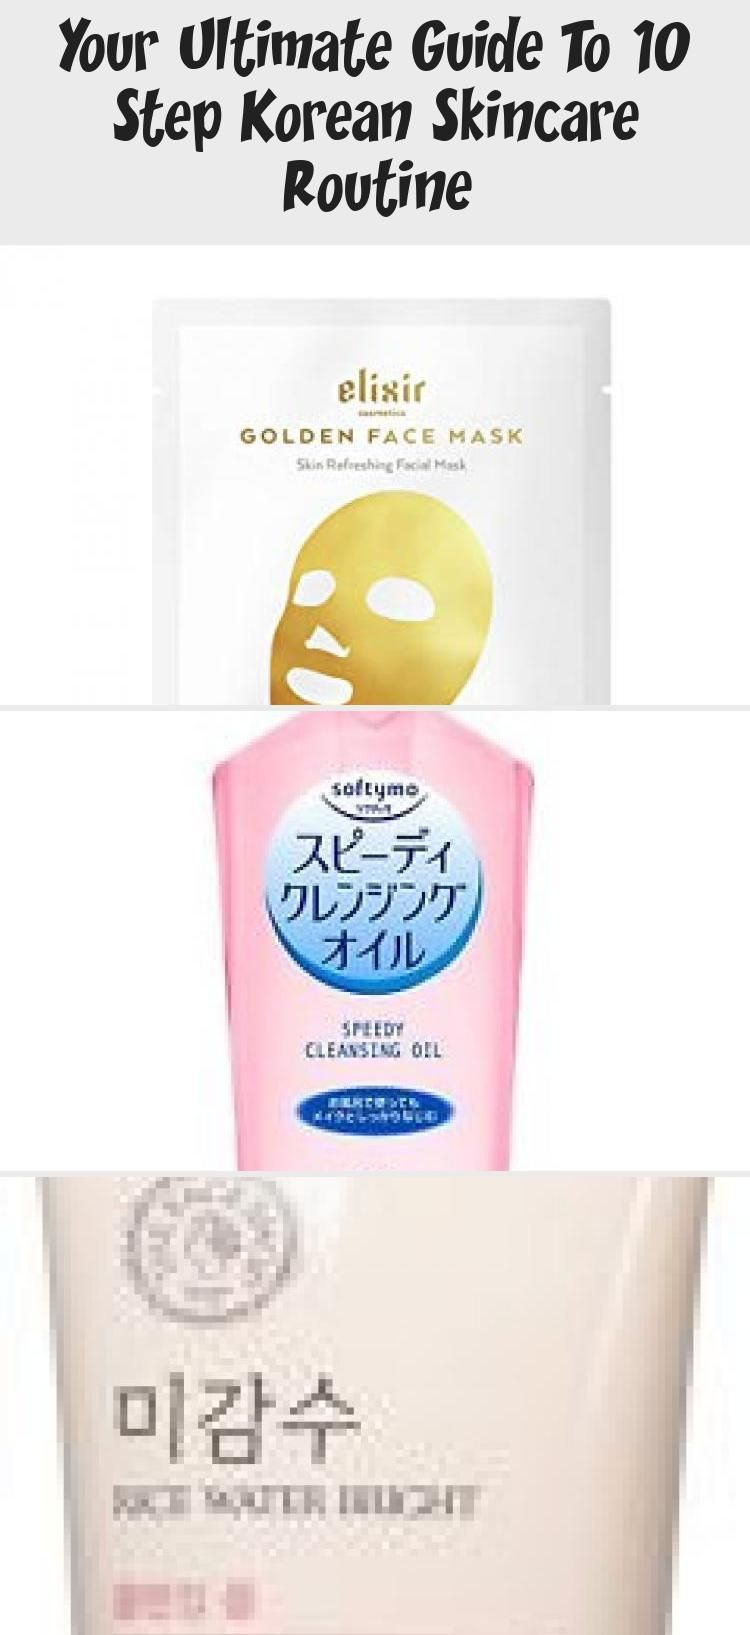 Your Ultimate Guide To 10 Step Korean Skincare Routine - Beauty -  Your Ultimate Guide To 10 Step Korean Skincare Routine. The Korean skincare routine is perfect to a - #beauty #bestKoreanSkincare #Guide #Korean #KoreanSkincarebeforeandafter #KoreanSkincareproducts #KoreanSkincareregimen #KoreanSkincareroutine #Routine #Skincare #Step #Ultimate